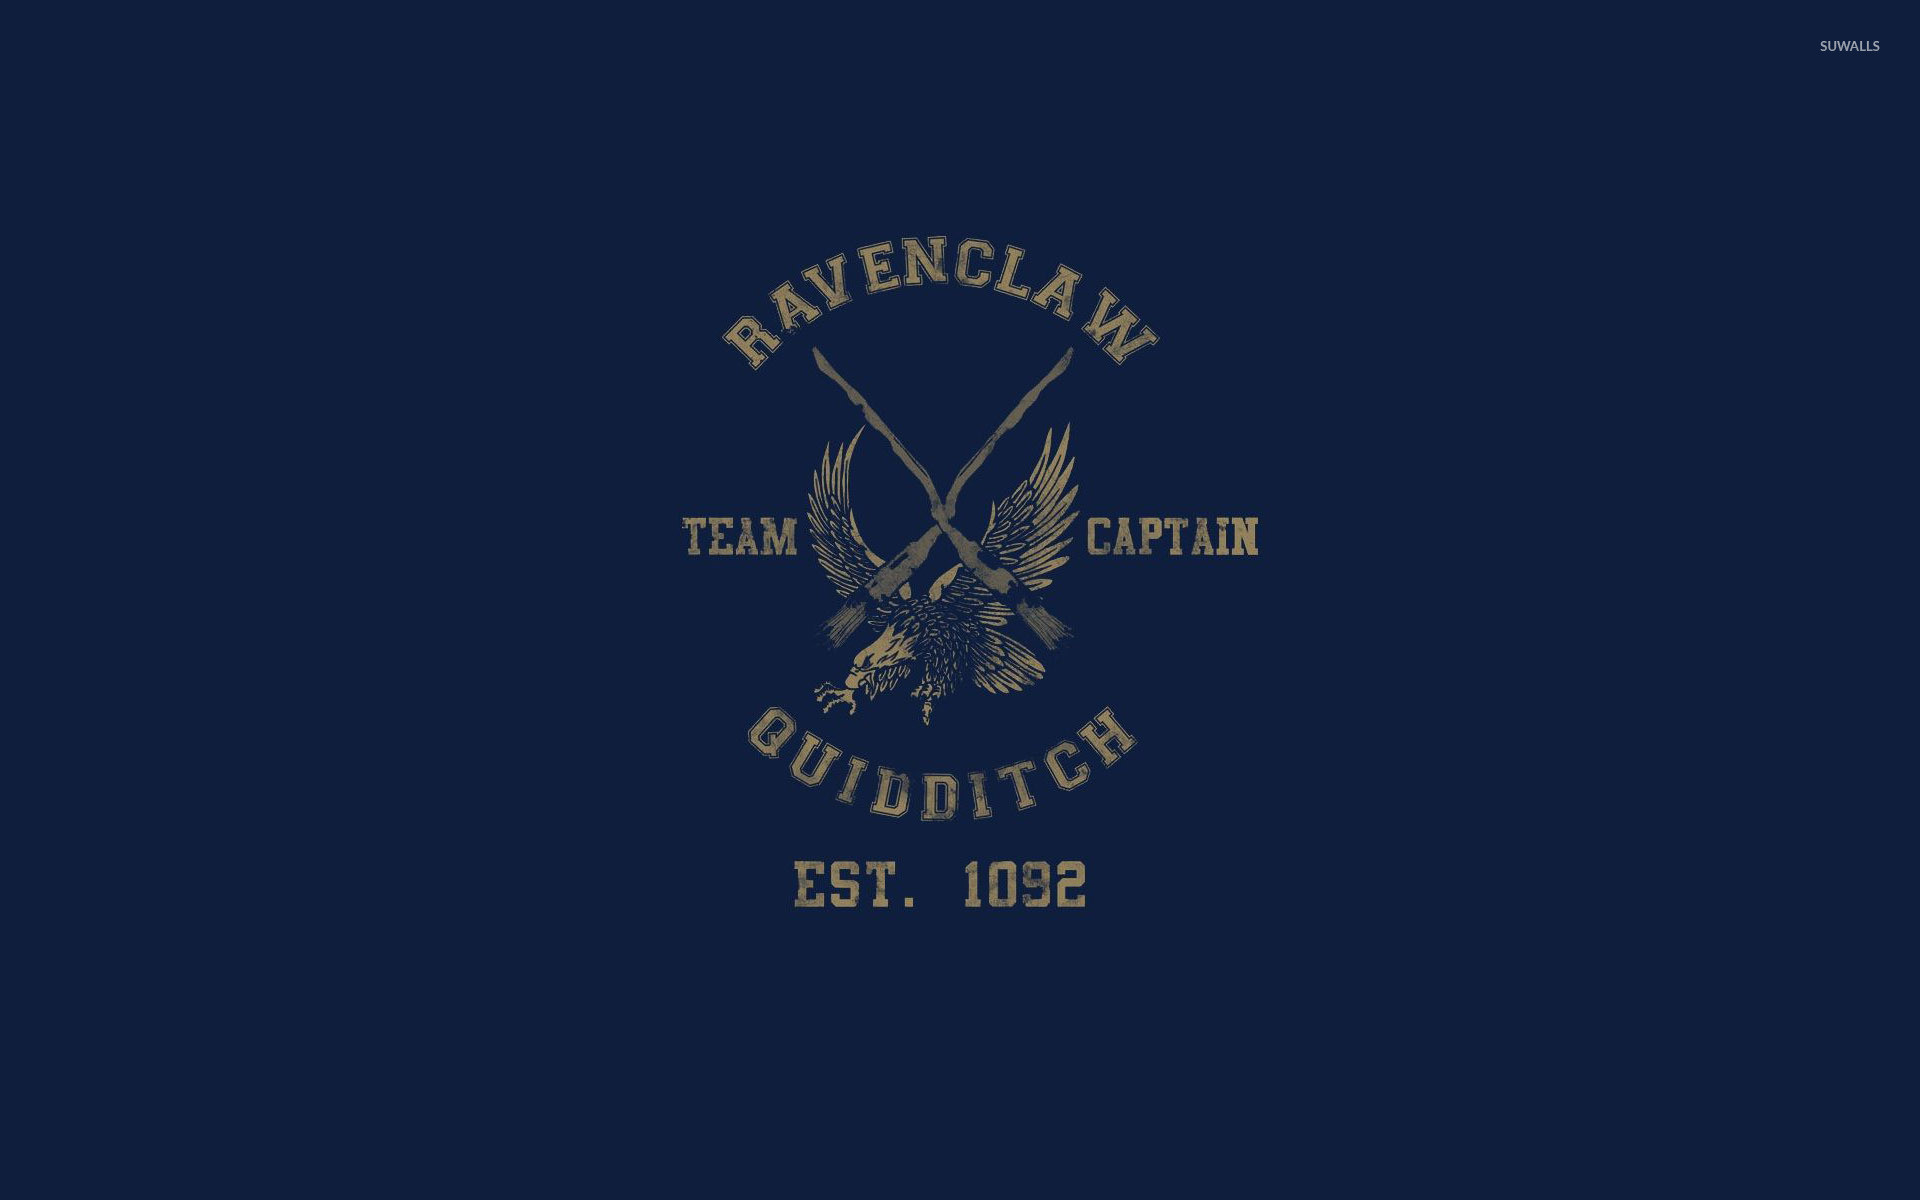 1920x1200 Ravenclaw Quidditch team - Harry Potter wallpaper  jpg